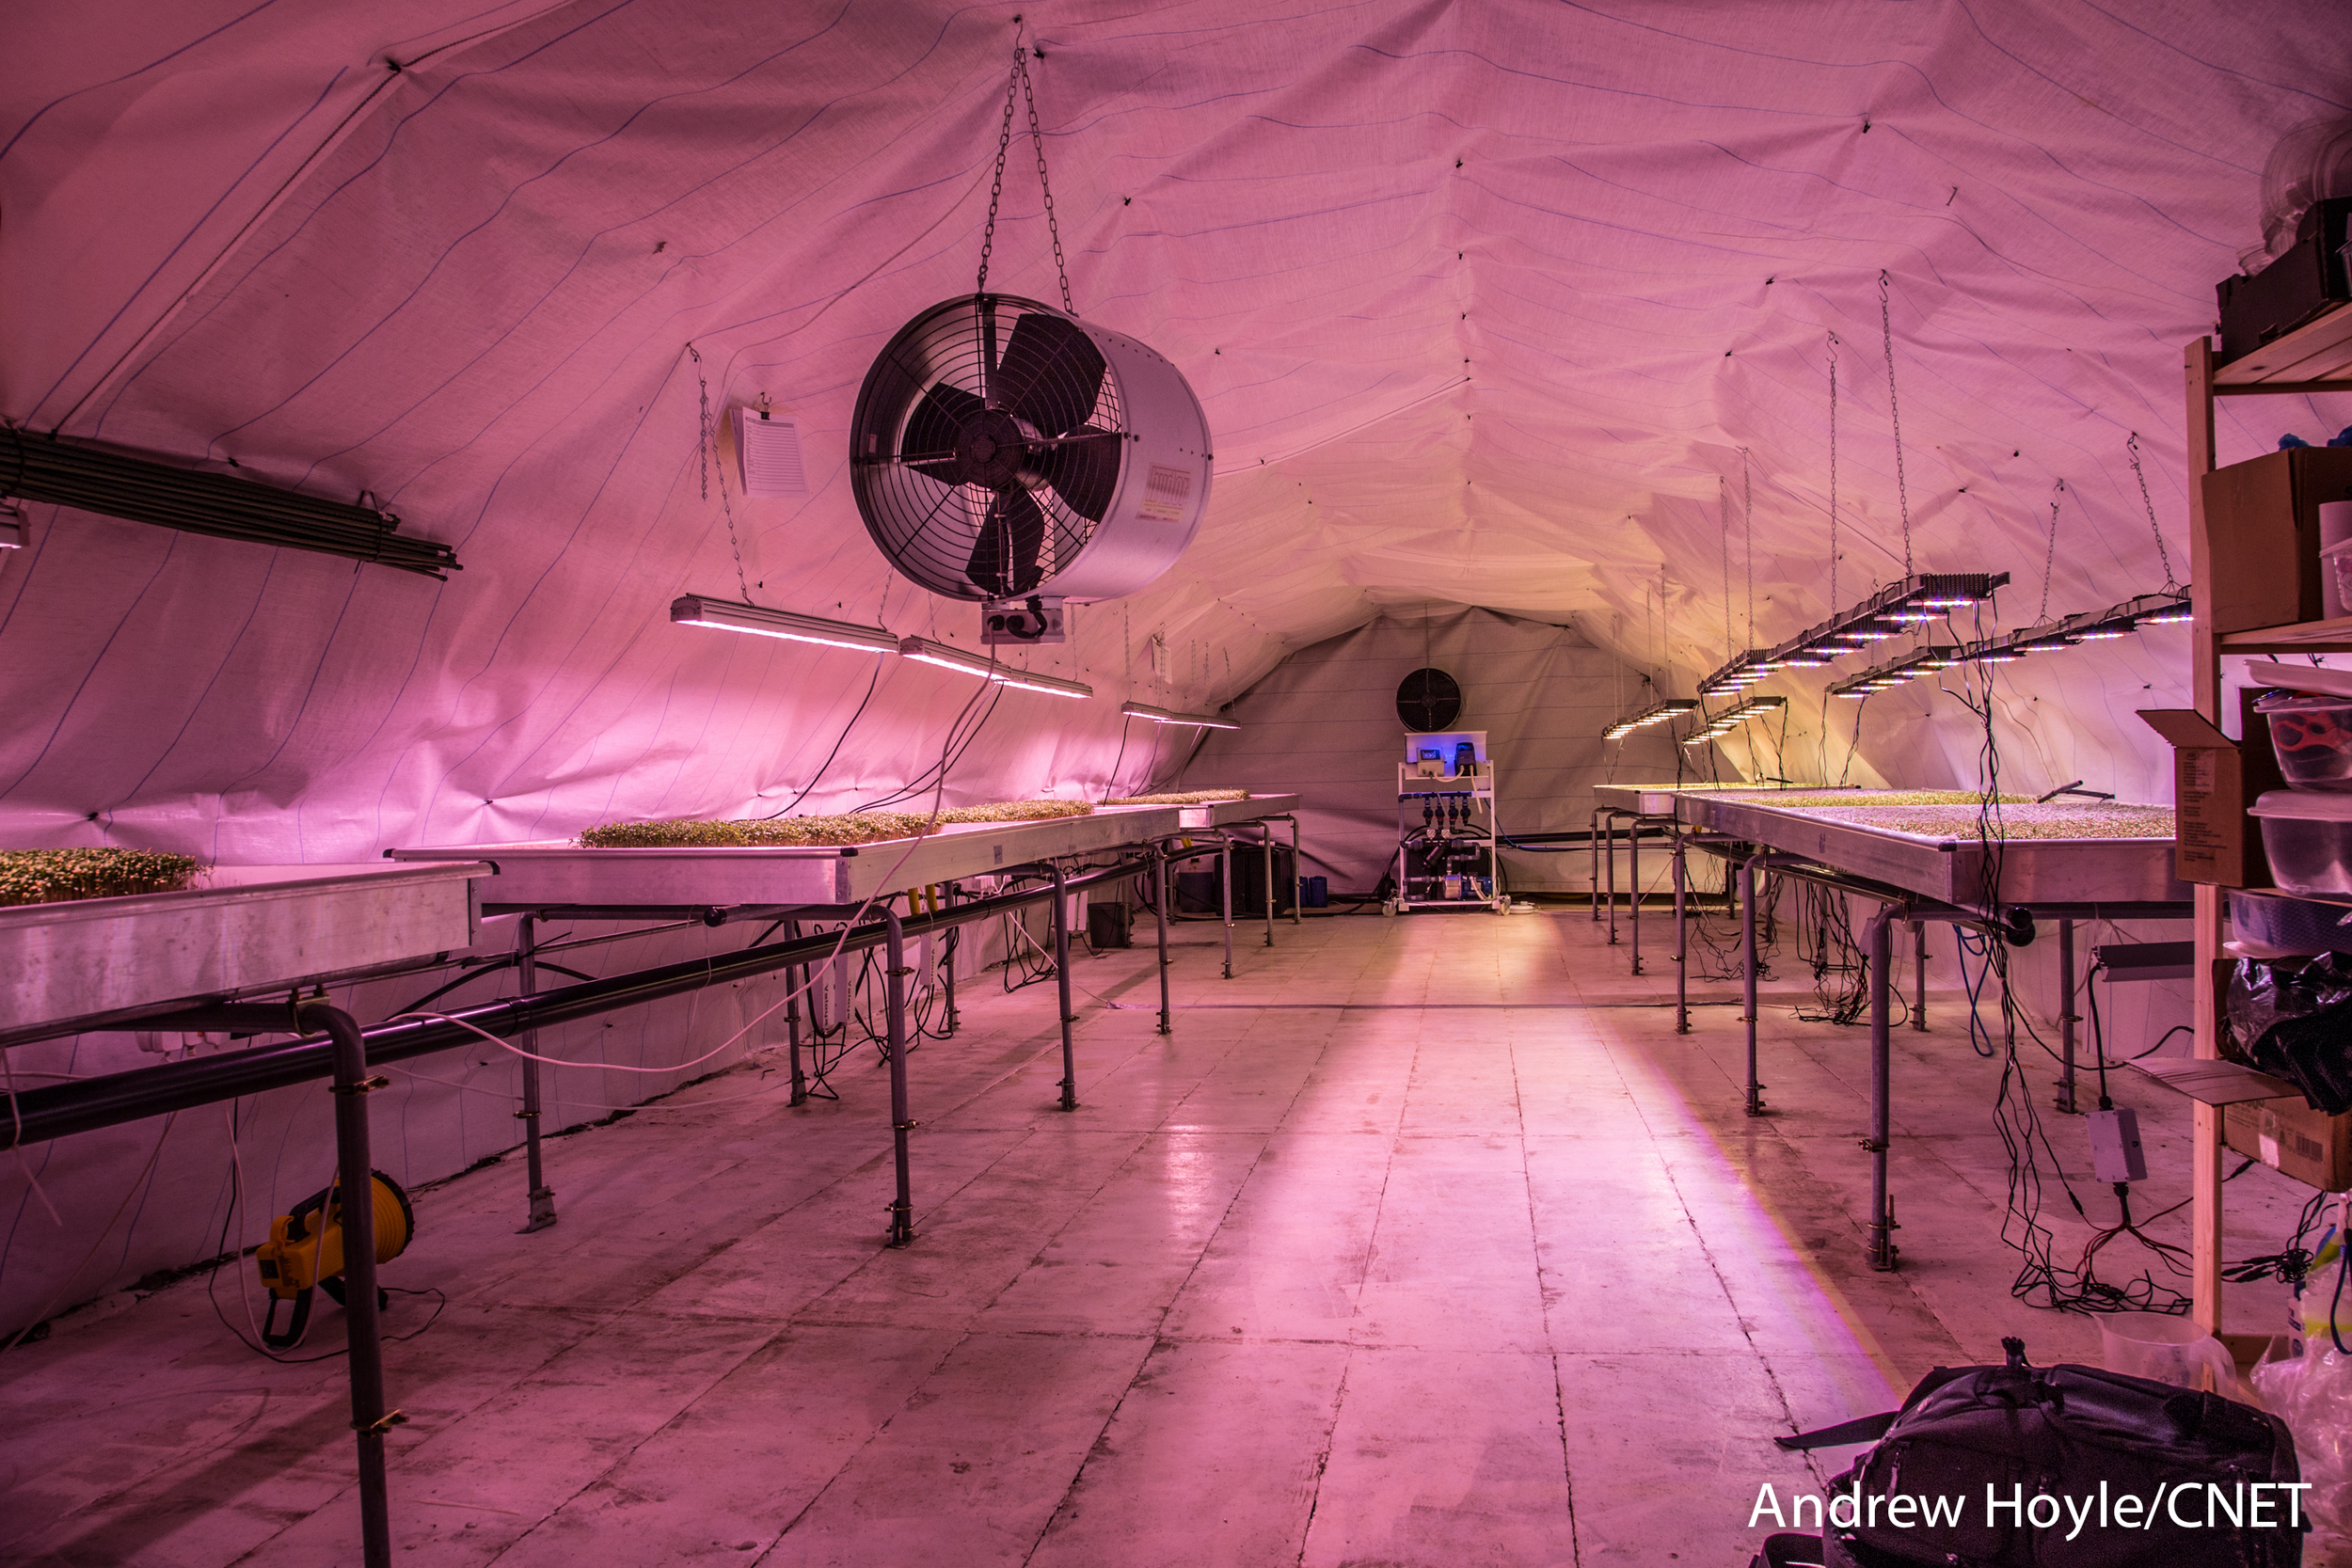 bomb-shelter-farm-london-26.jpg